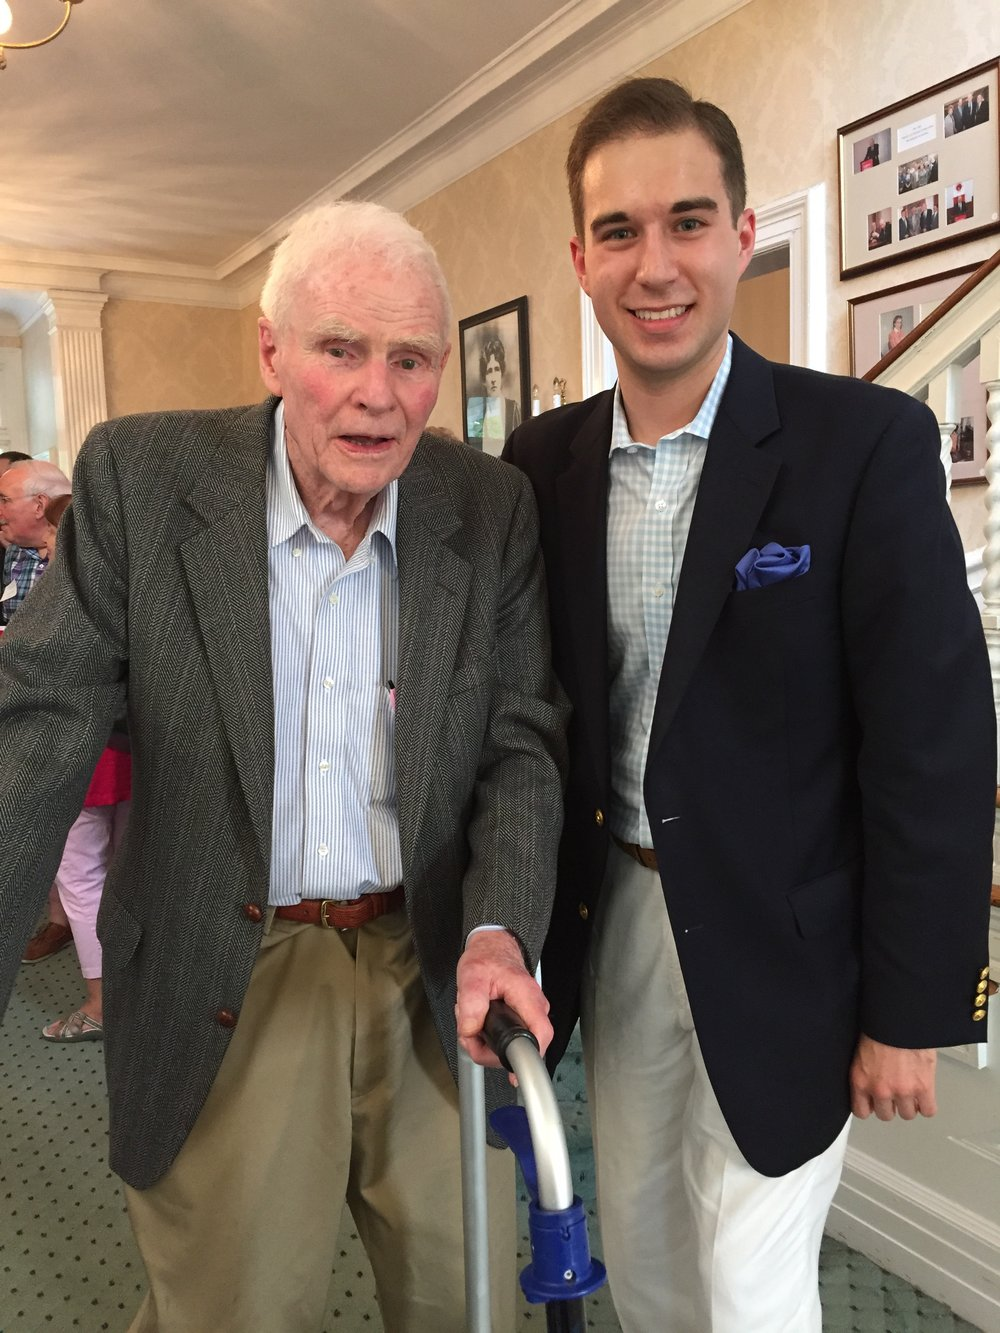 With former Governor Brendan Byrne (D-NJ), June 2015